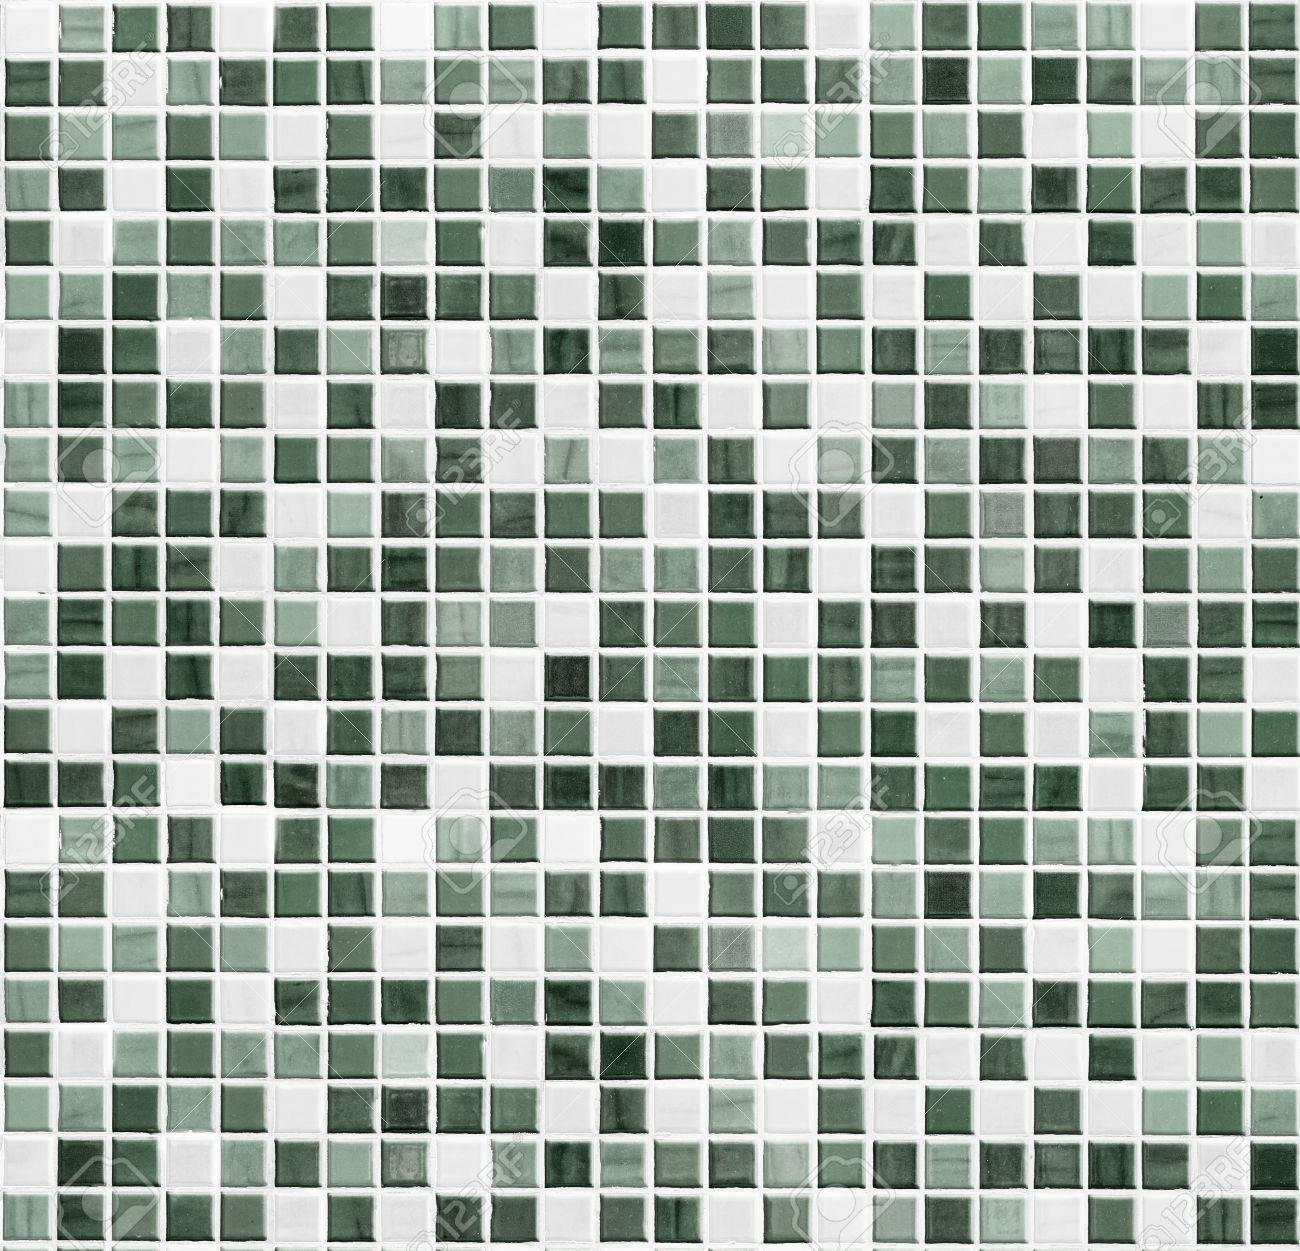 Green Tiled Bathroom, Kitchen Or Toilet Tile Wall Background Stock ...